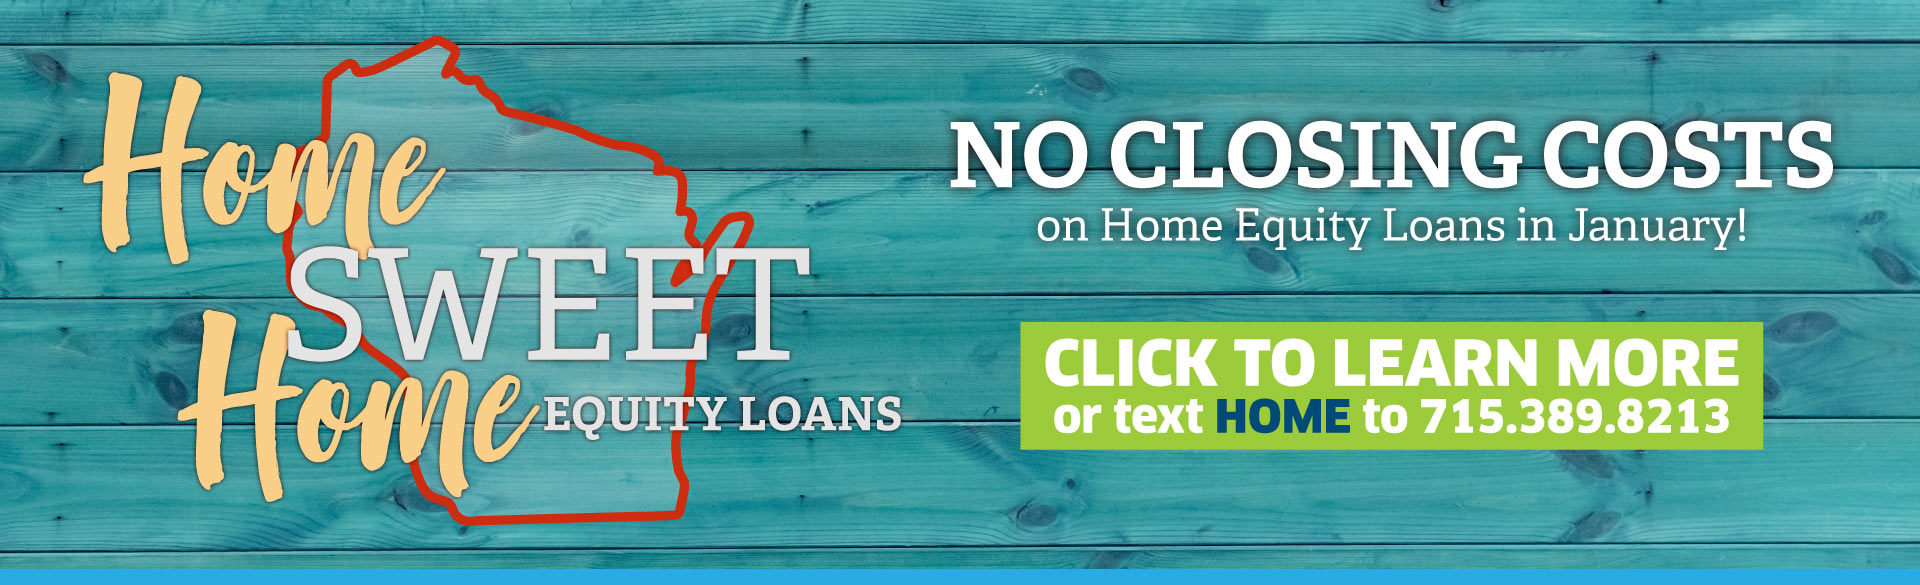 No closing costs on home equity loans in the month of January!